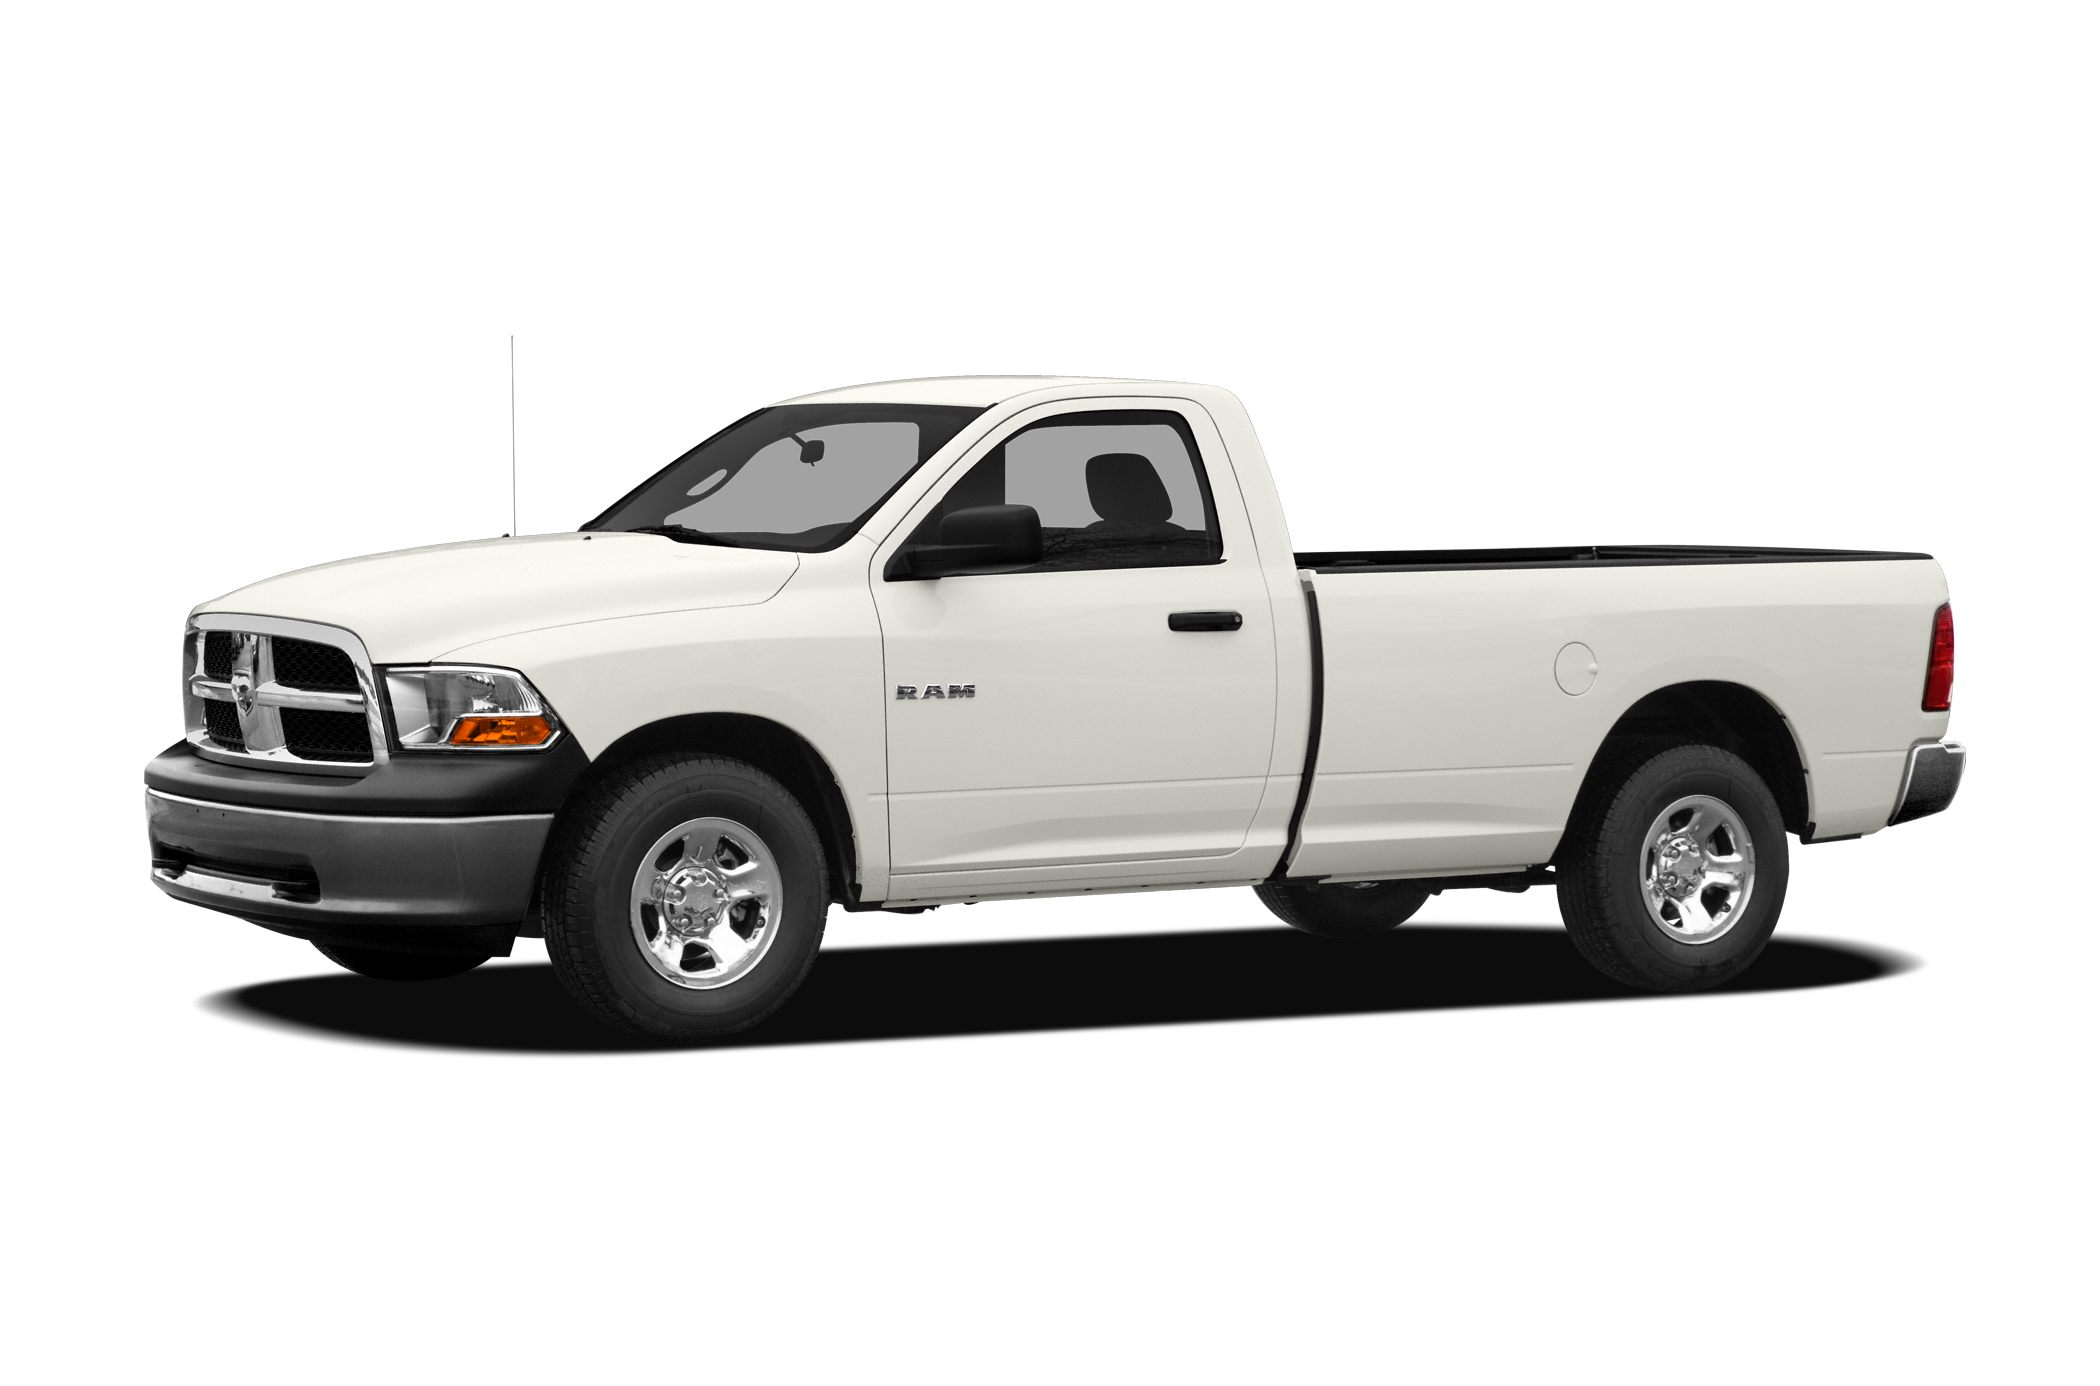 2010 Dodge Ram 1500 ST 4 WHEEL DRIVE Ram 1500 ST 2D Standard Cab 47L V8 Flex Fuel 5-Speed Au